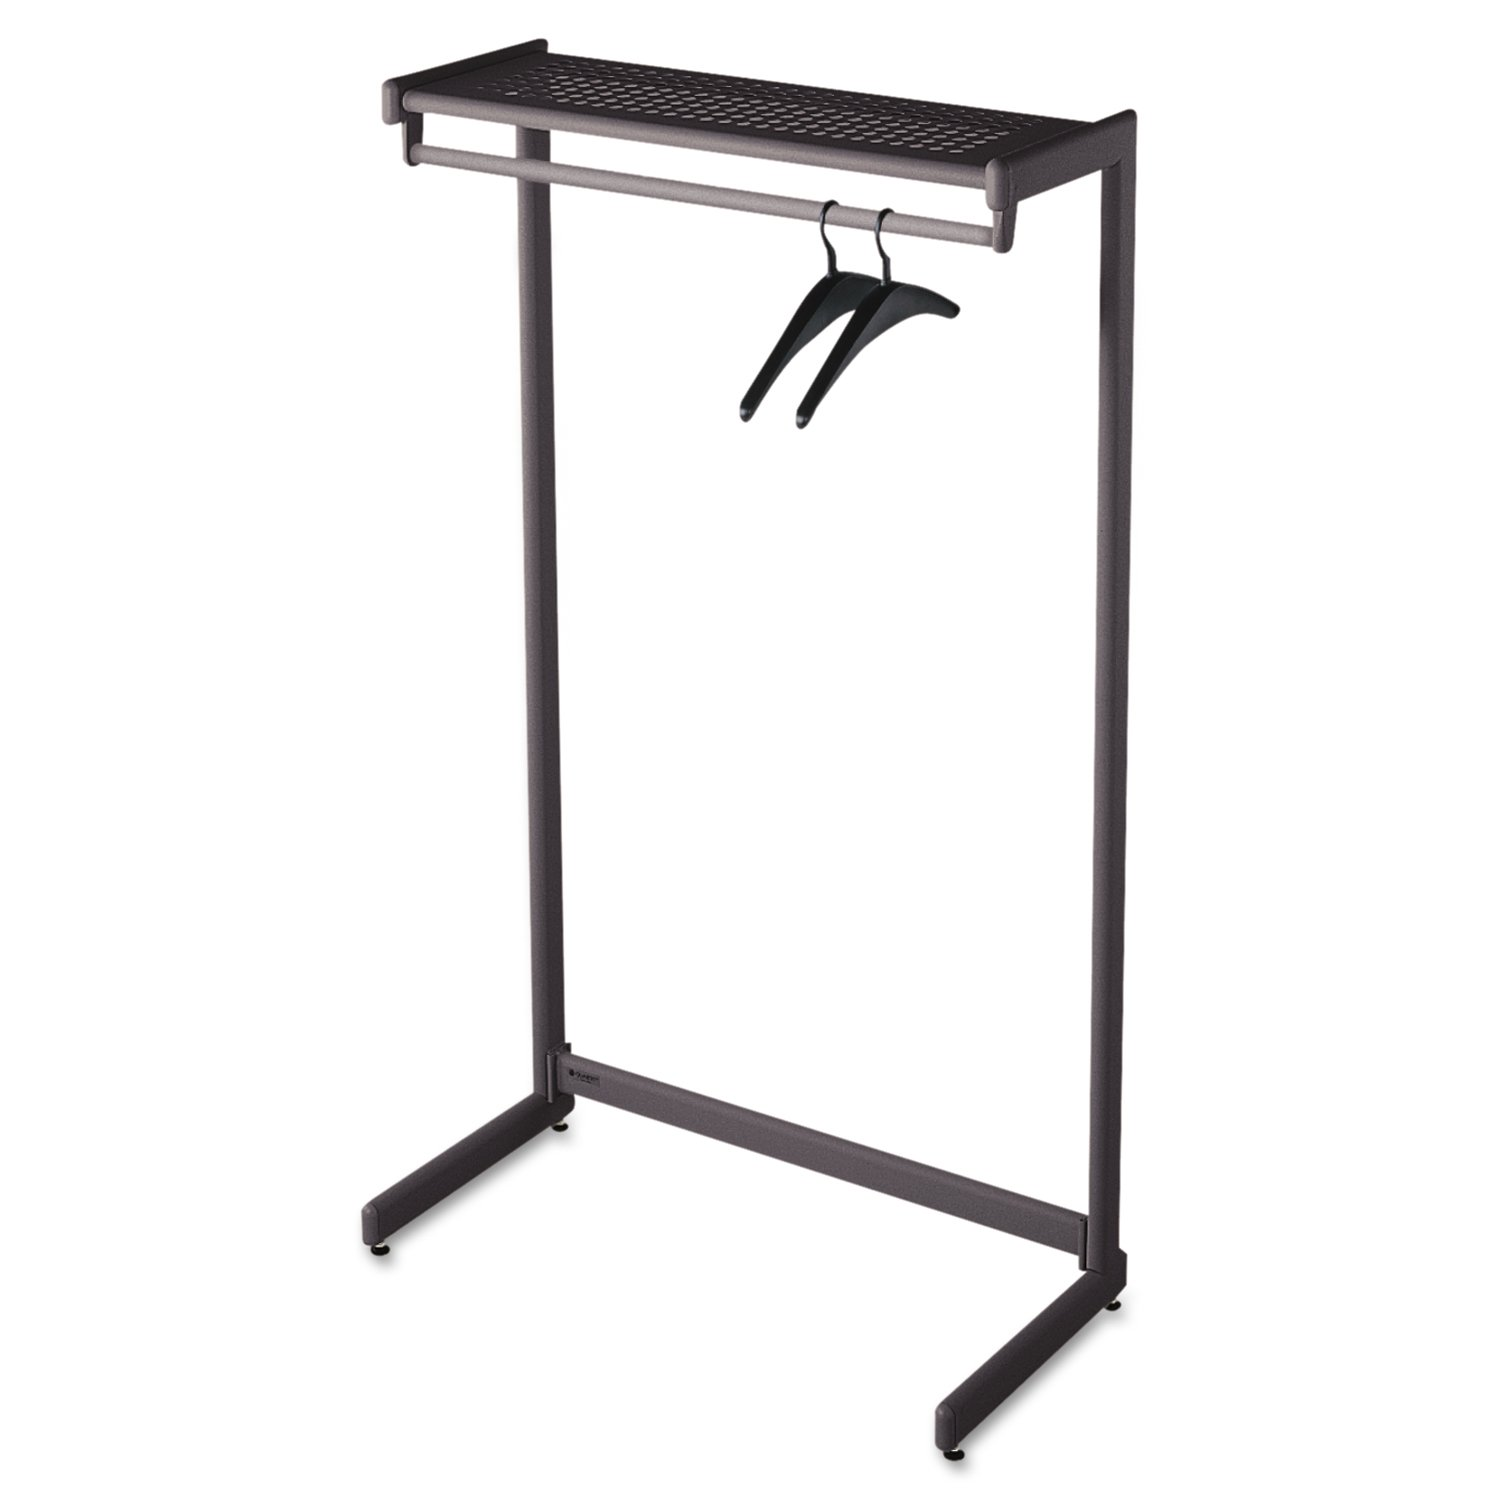 amazoncom  quartet twoshelf garment rack freestanding  inch  - amazoncom  quartet twoshelf garment rack freestanding  inch black hangers included ()  quartet coat rack  office products